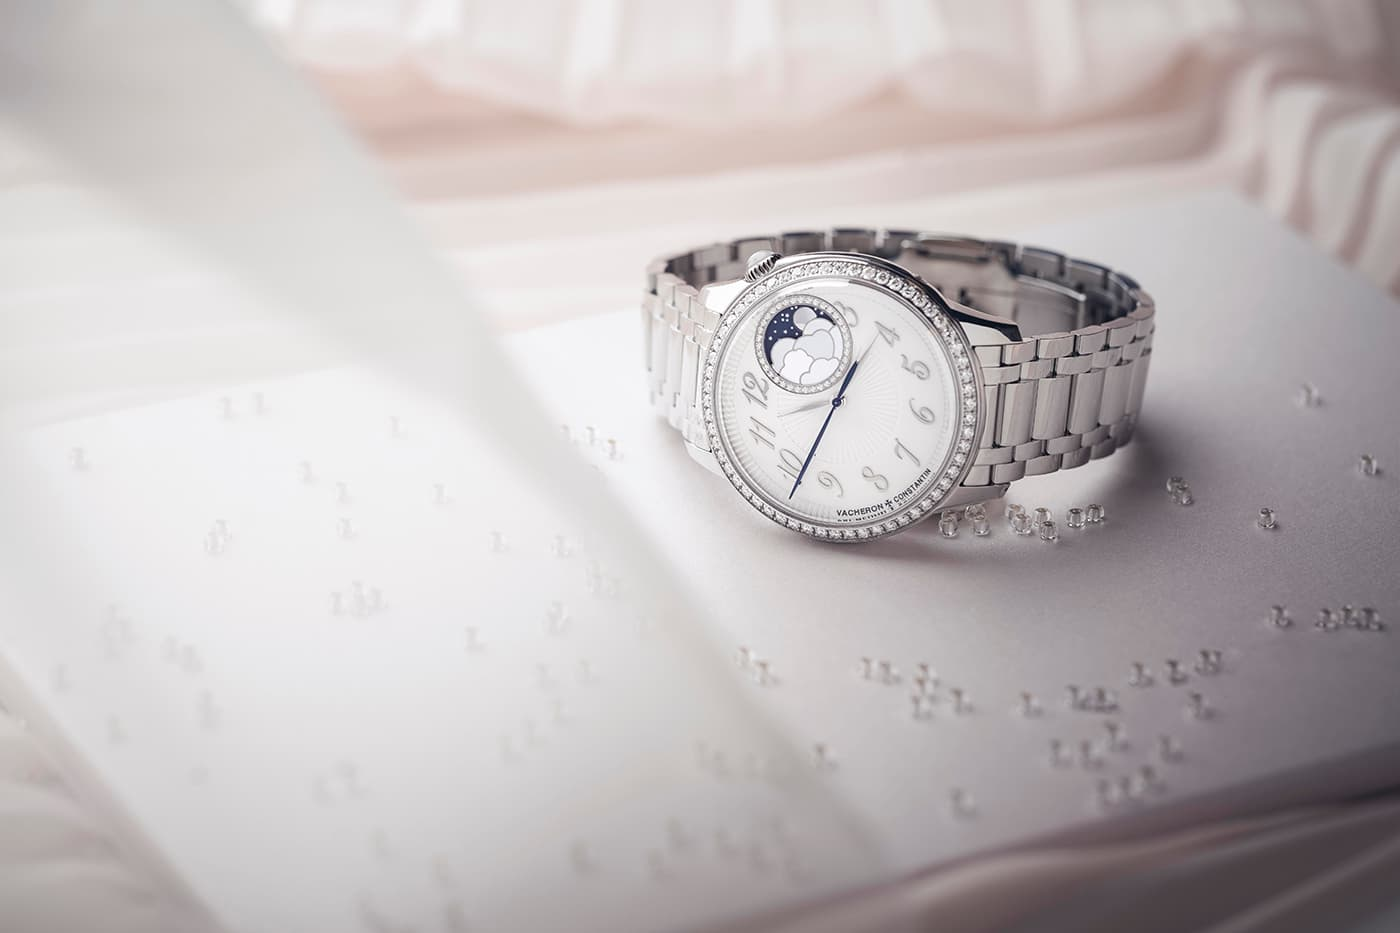 Vacheron Constantin Égérie watch with diamond bezel and detail in stainless steel